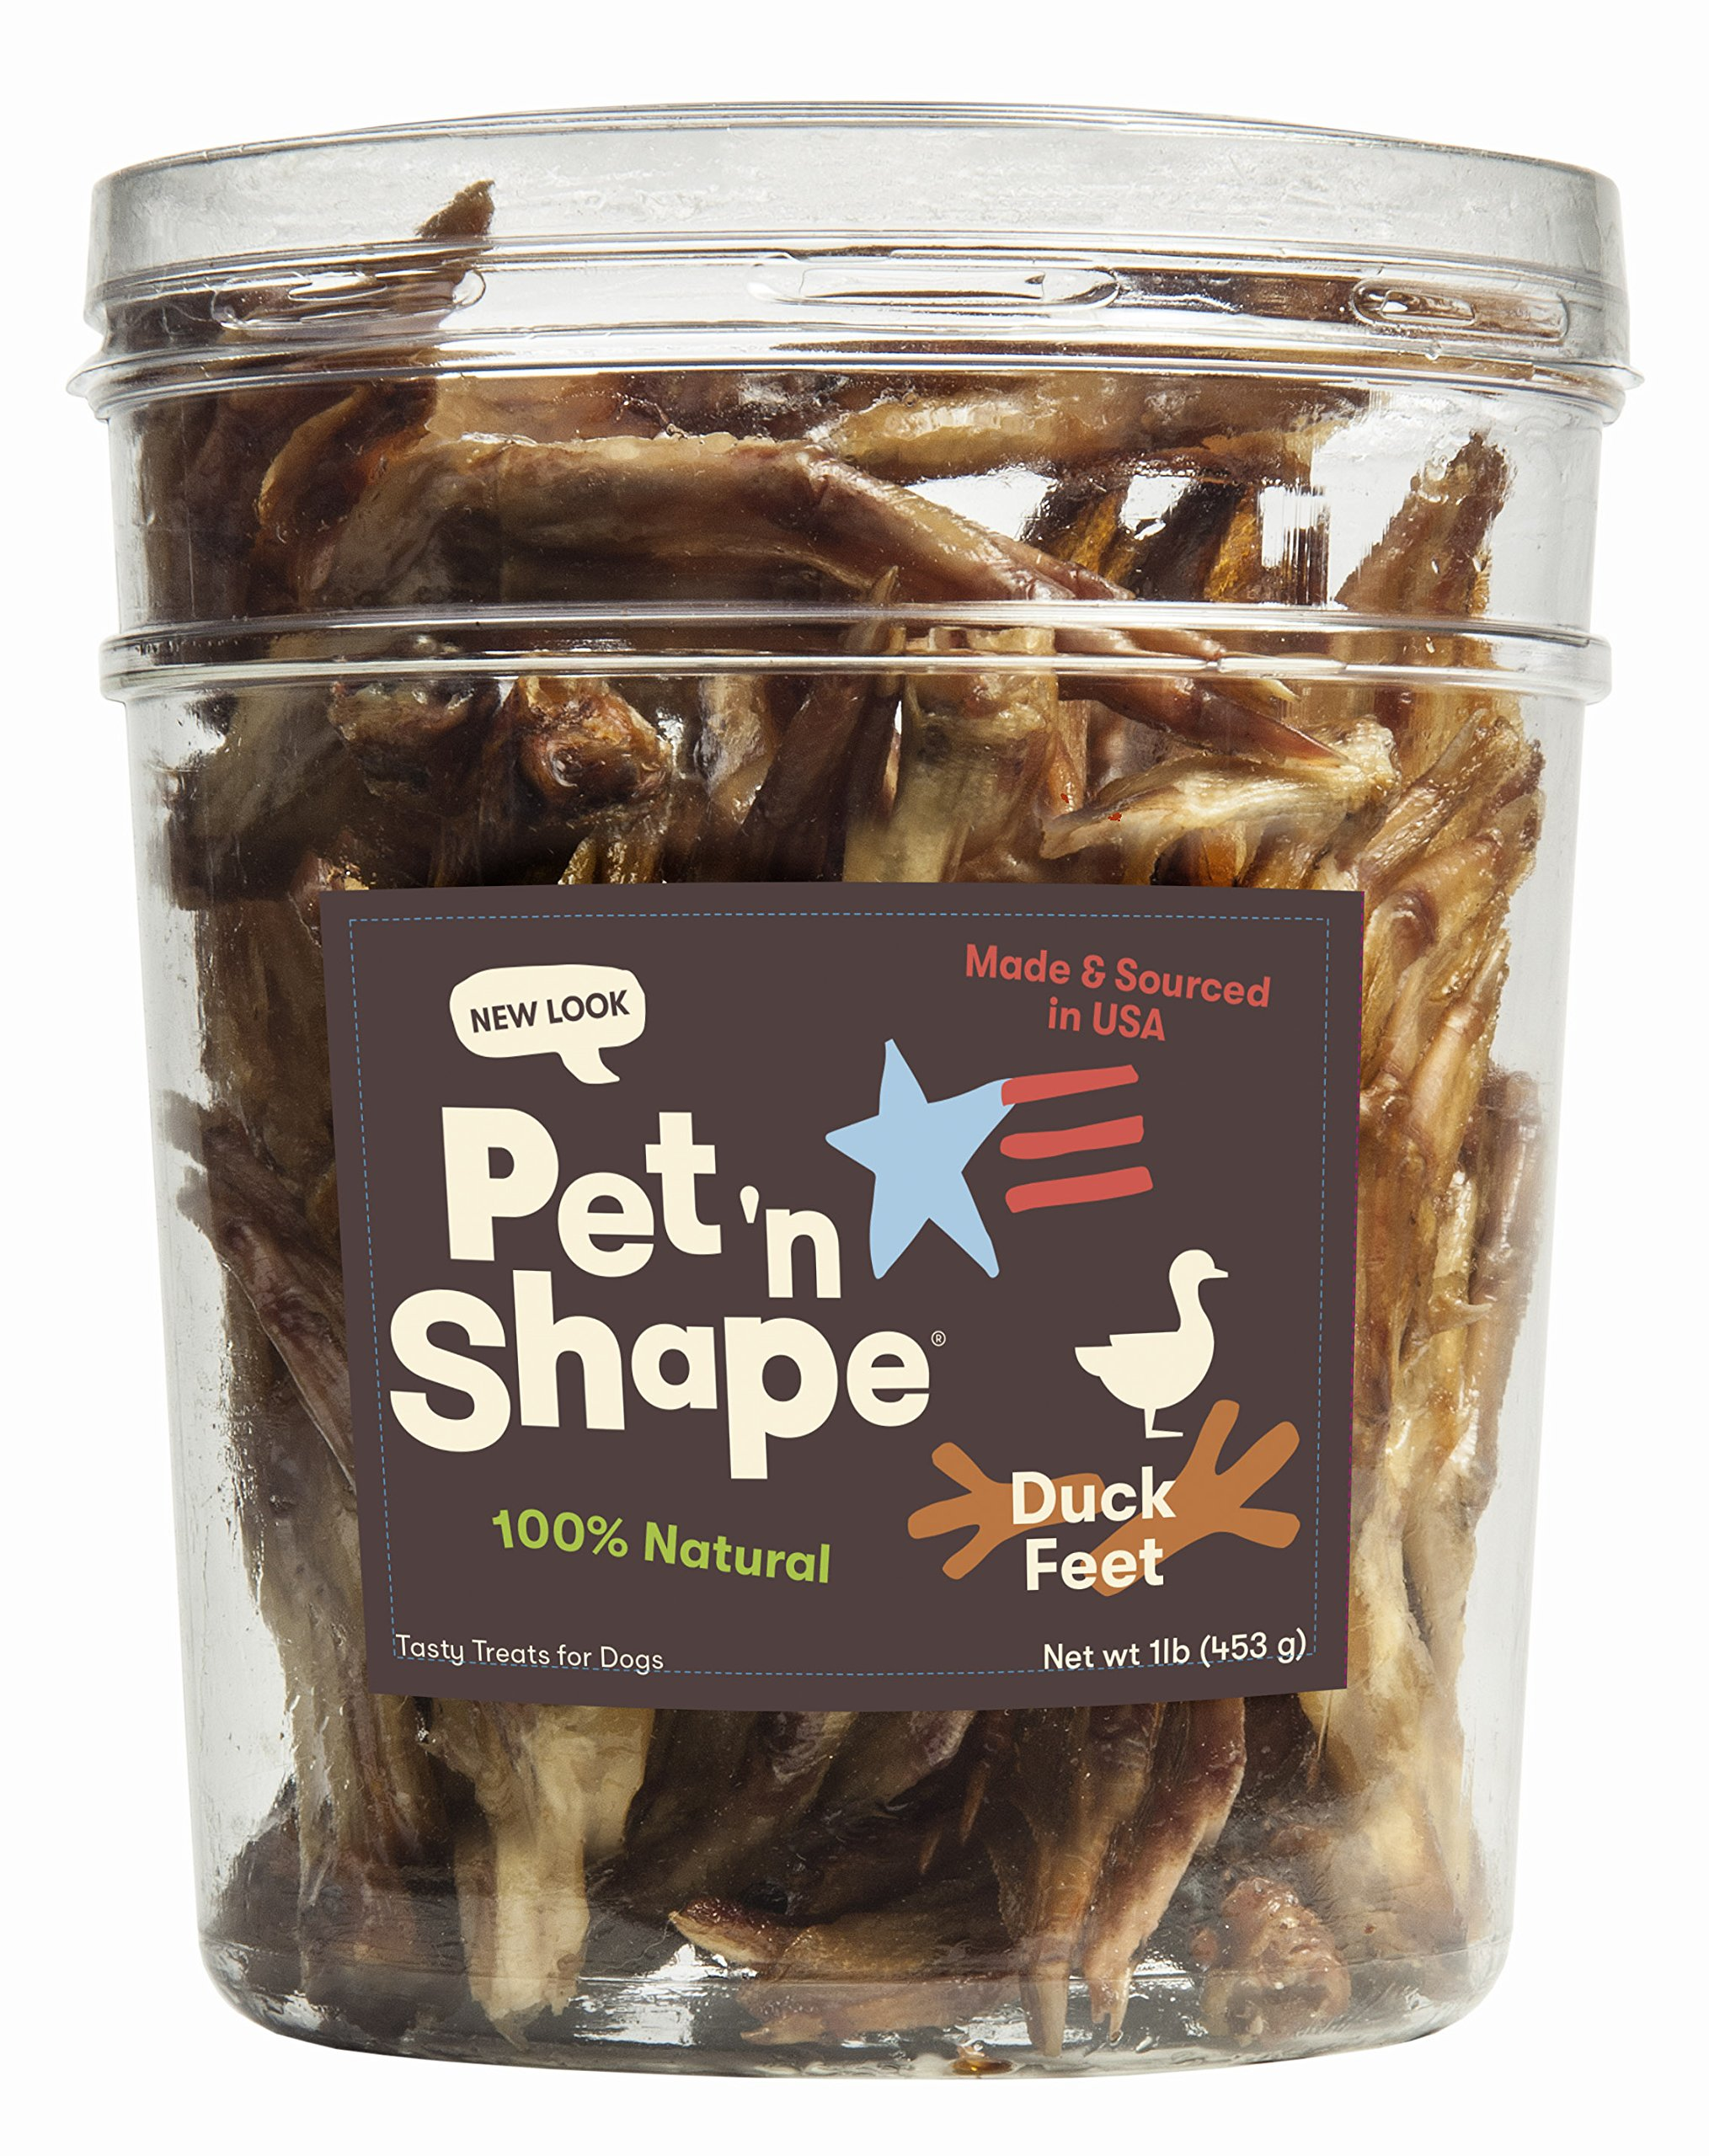 Pet 'n Shape Duck Feet - Made & Sourced in The USA - All-NaturalDog Treat, 1 Lb (30 Count) by Pet 'n Shape